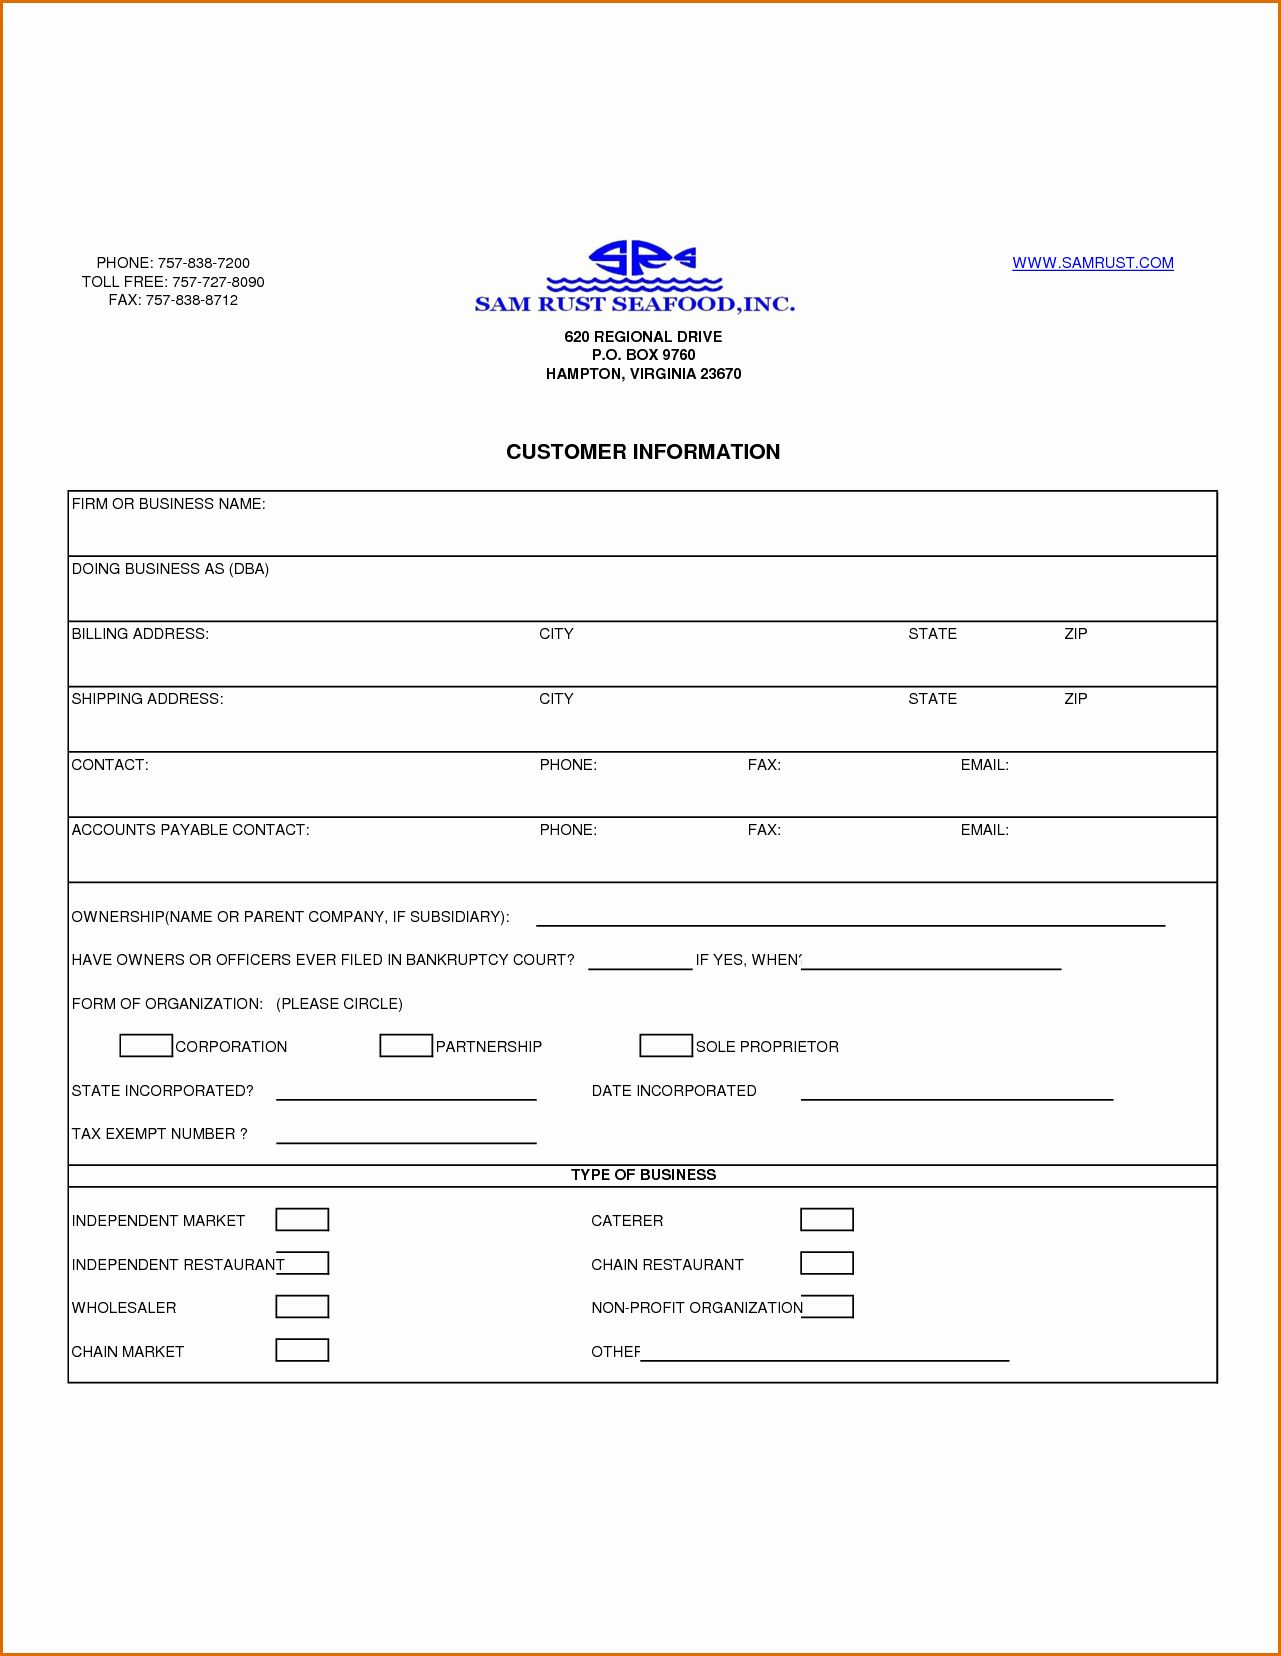 New Customer Information Form Template In 2020 Templates